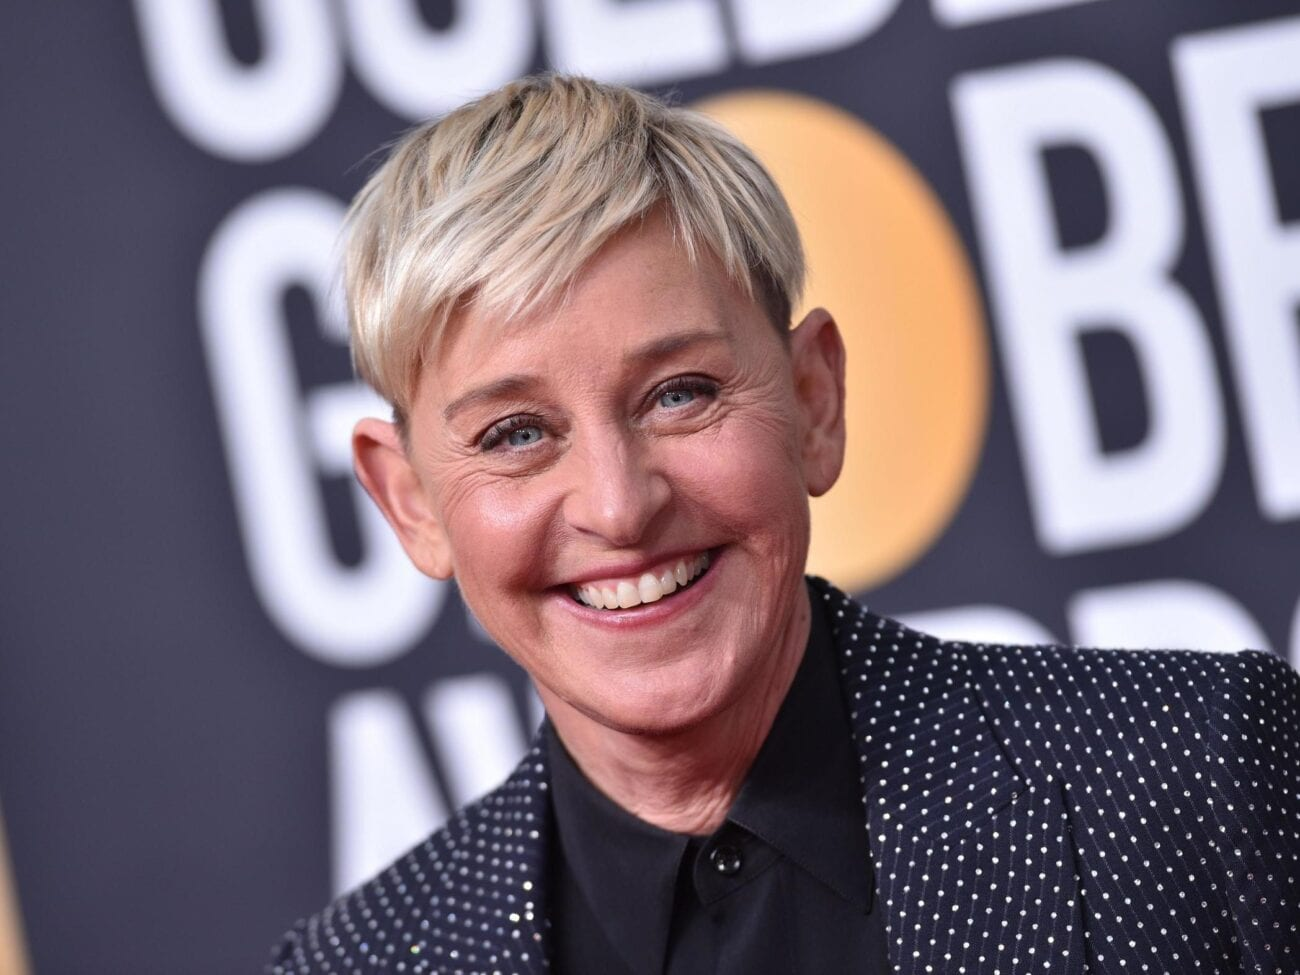 This is a good time to look at all the times Ellen gave us moments of discomfort during 'The Ellen DeGeneres Show'. Here are cringey interviews.